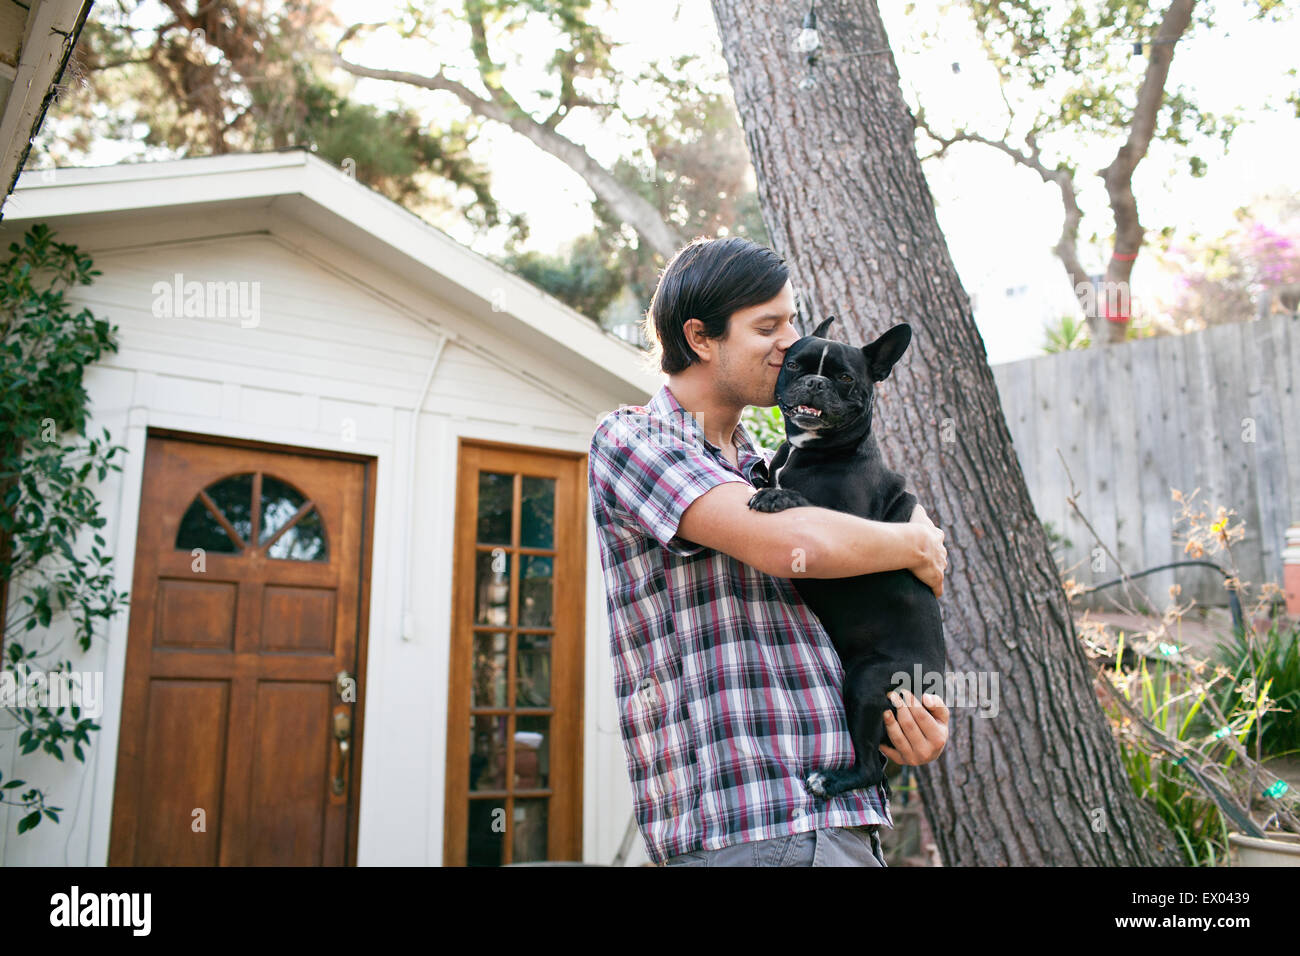 Young man kissing dog outside front door - Stock Image